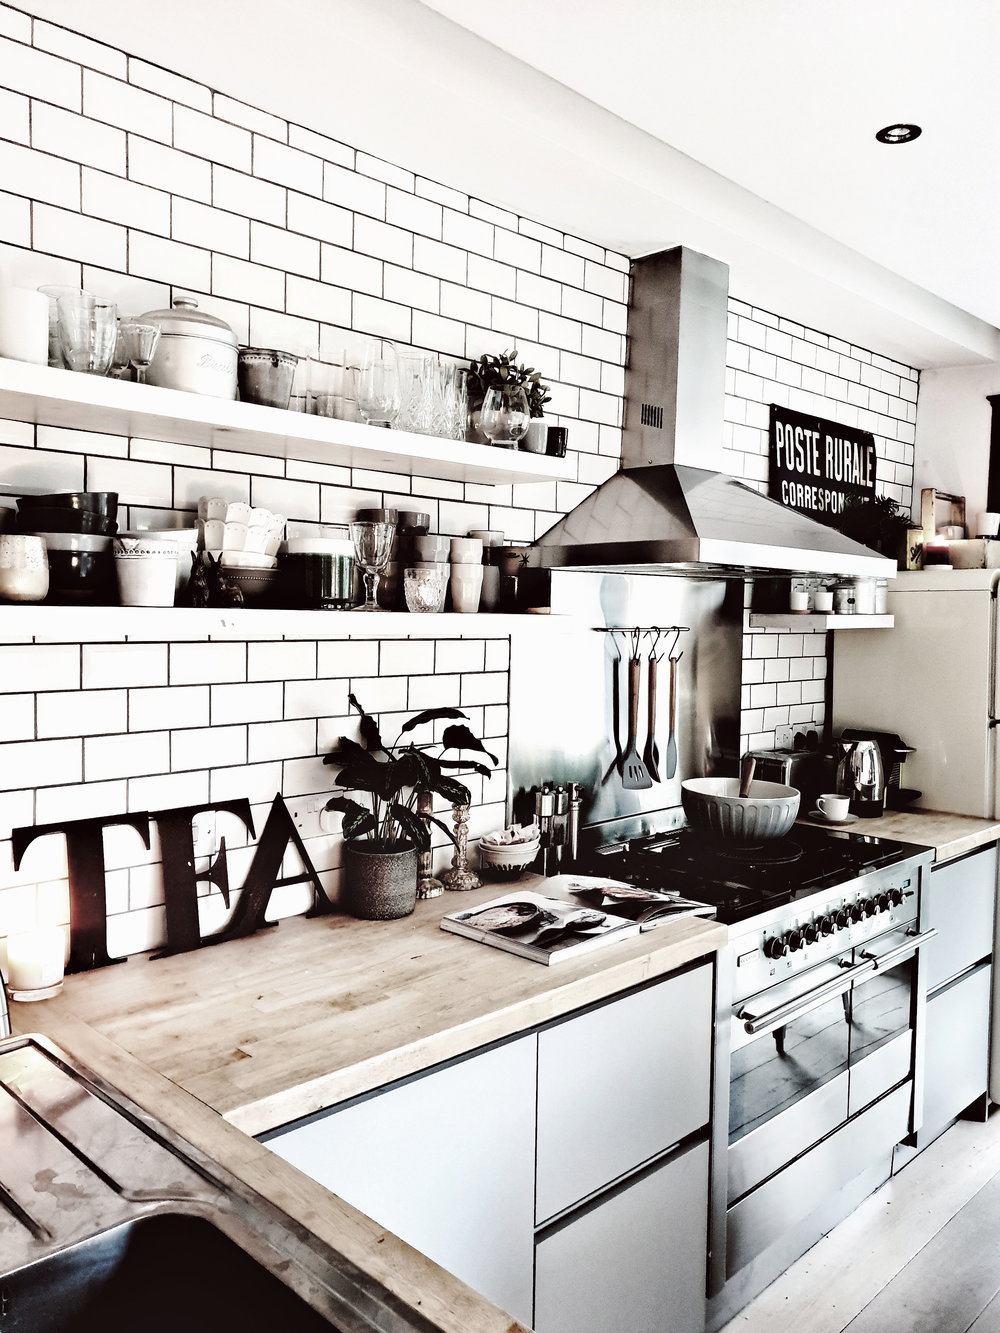 My scandinavian kitchen with grey kitchen units, open shelving and metro tiles on the wall. It is a light, contemporary kitchen with modern rustic feel #modernrustic #contemporarykitchen #greykitchen #kitchenideas #kitchendesign